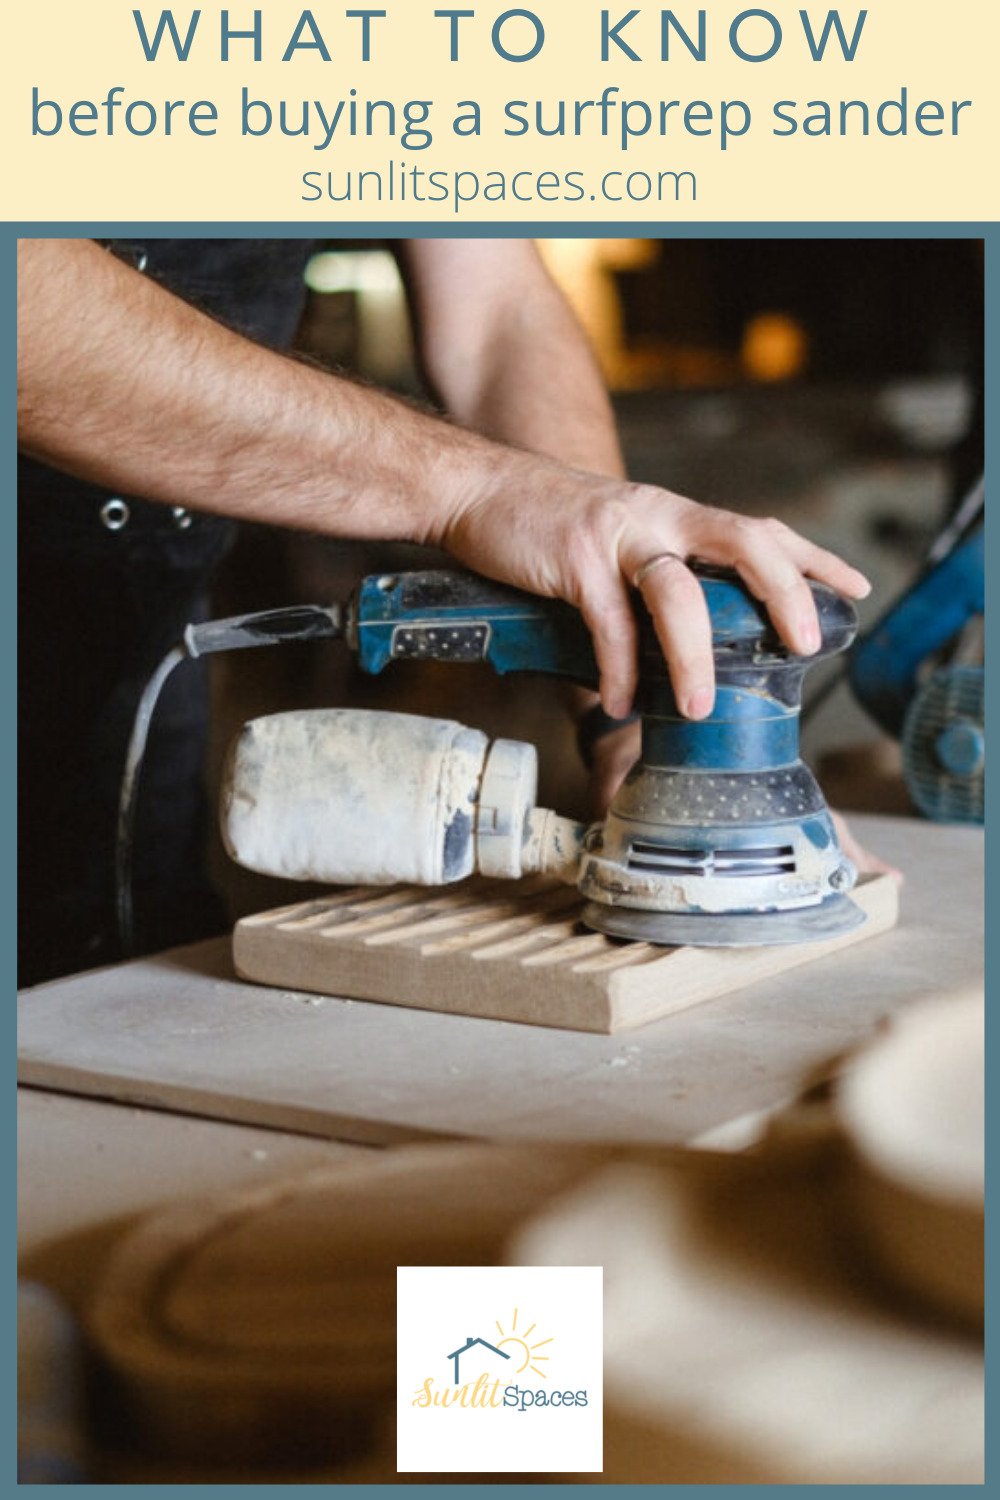 Sunlitspaces.com has the best tips for anyone interested in spicing up a drab space. Find out all you need to know before your next project. Decide today if a surfprep sander is right for you!